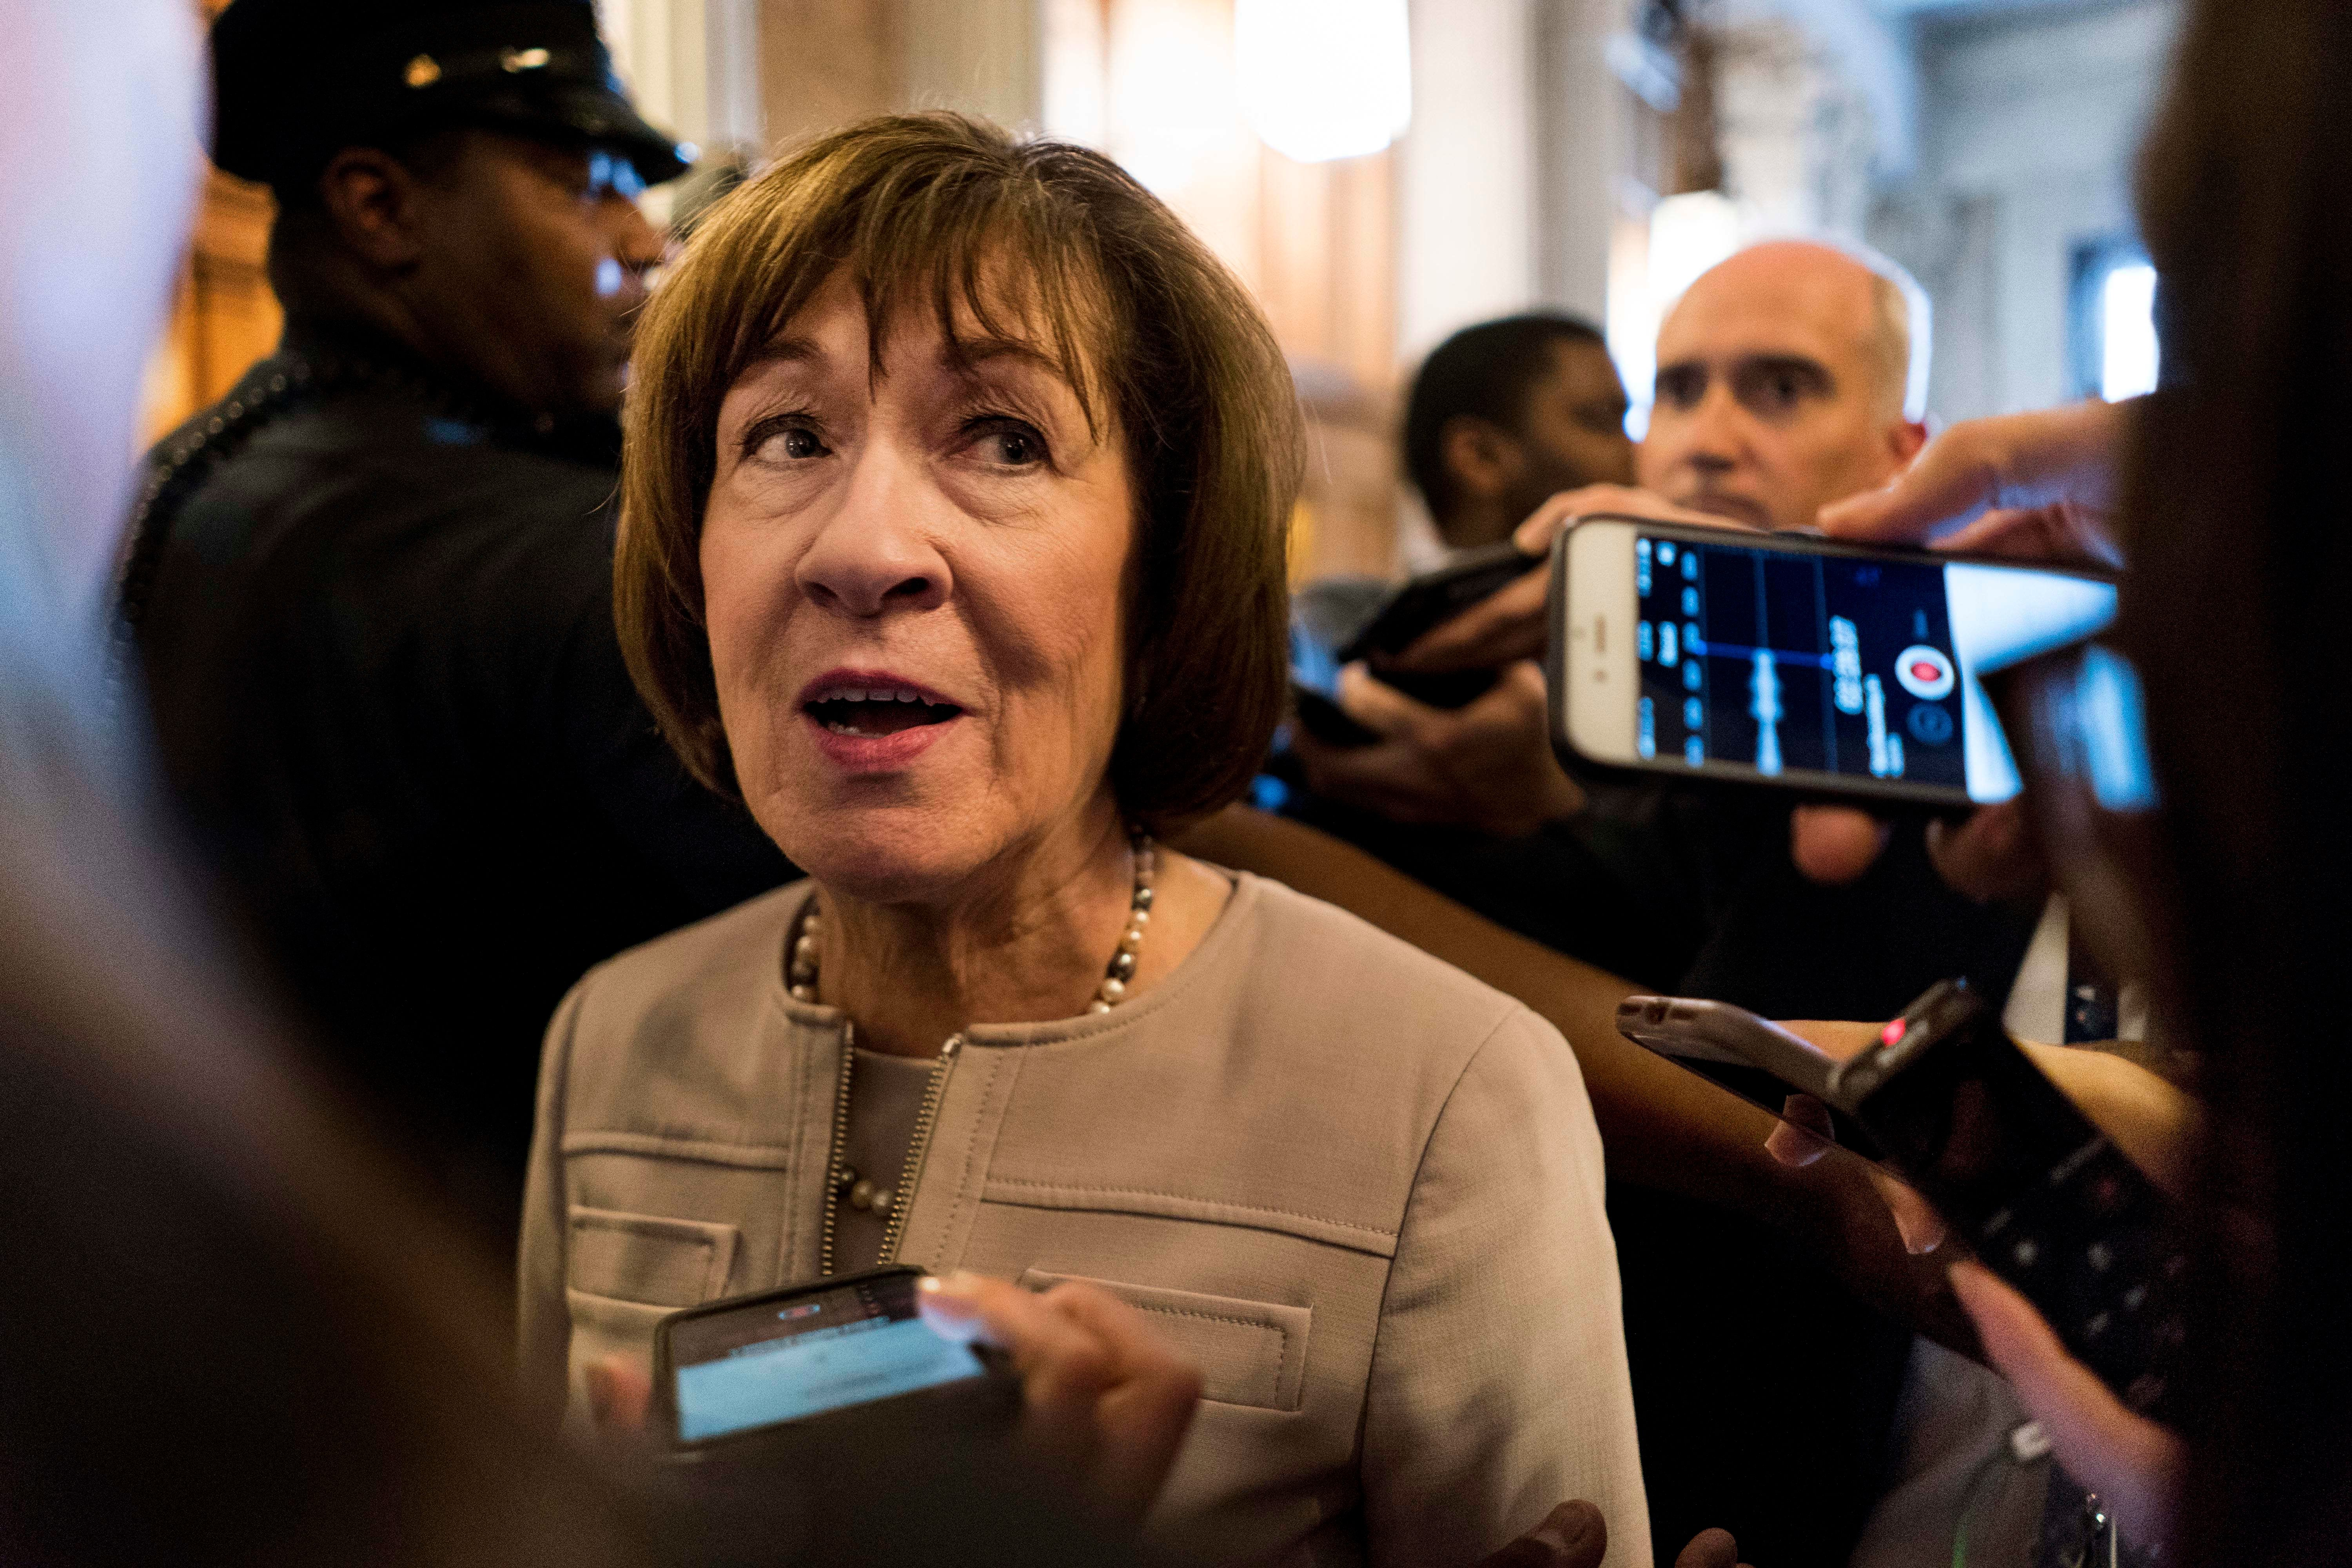 WASHINGTON, DC - Senator Susan Collins (R-ME) talks to a crowd a journalists after speaking on the Senate floor in favor of US Supreme Court nominee Judge Brett Kavanaugh   on Capitol Hill in Washington DC Friday October 5, 2018. (Photo by Melina Mara/The Washington Post via Getty Images)